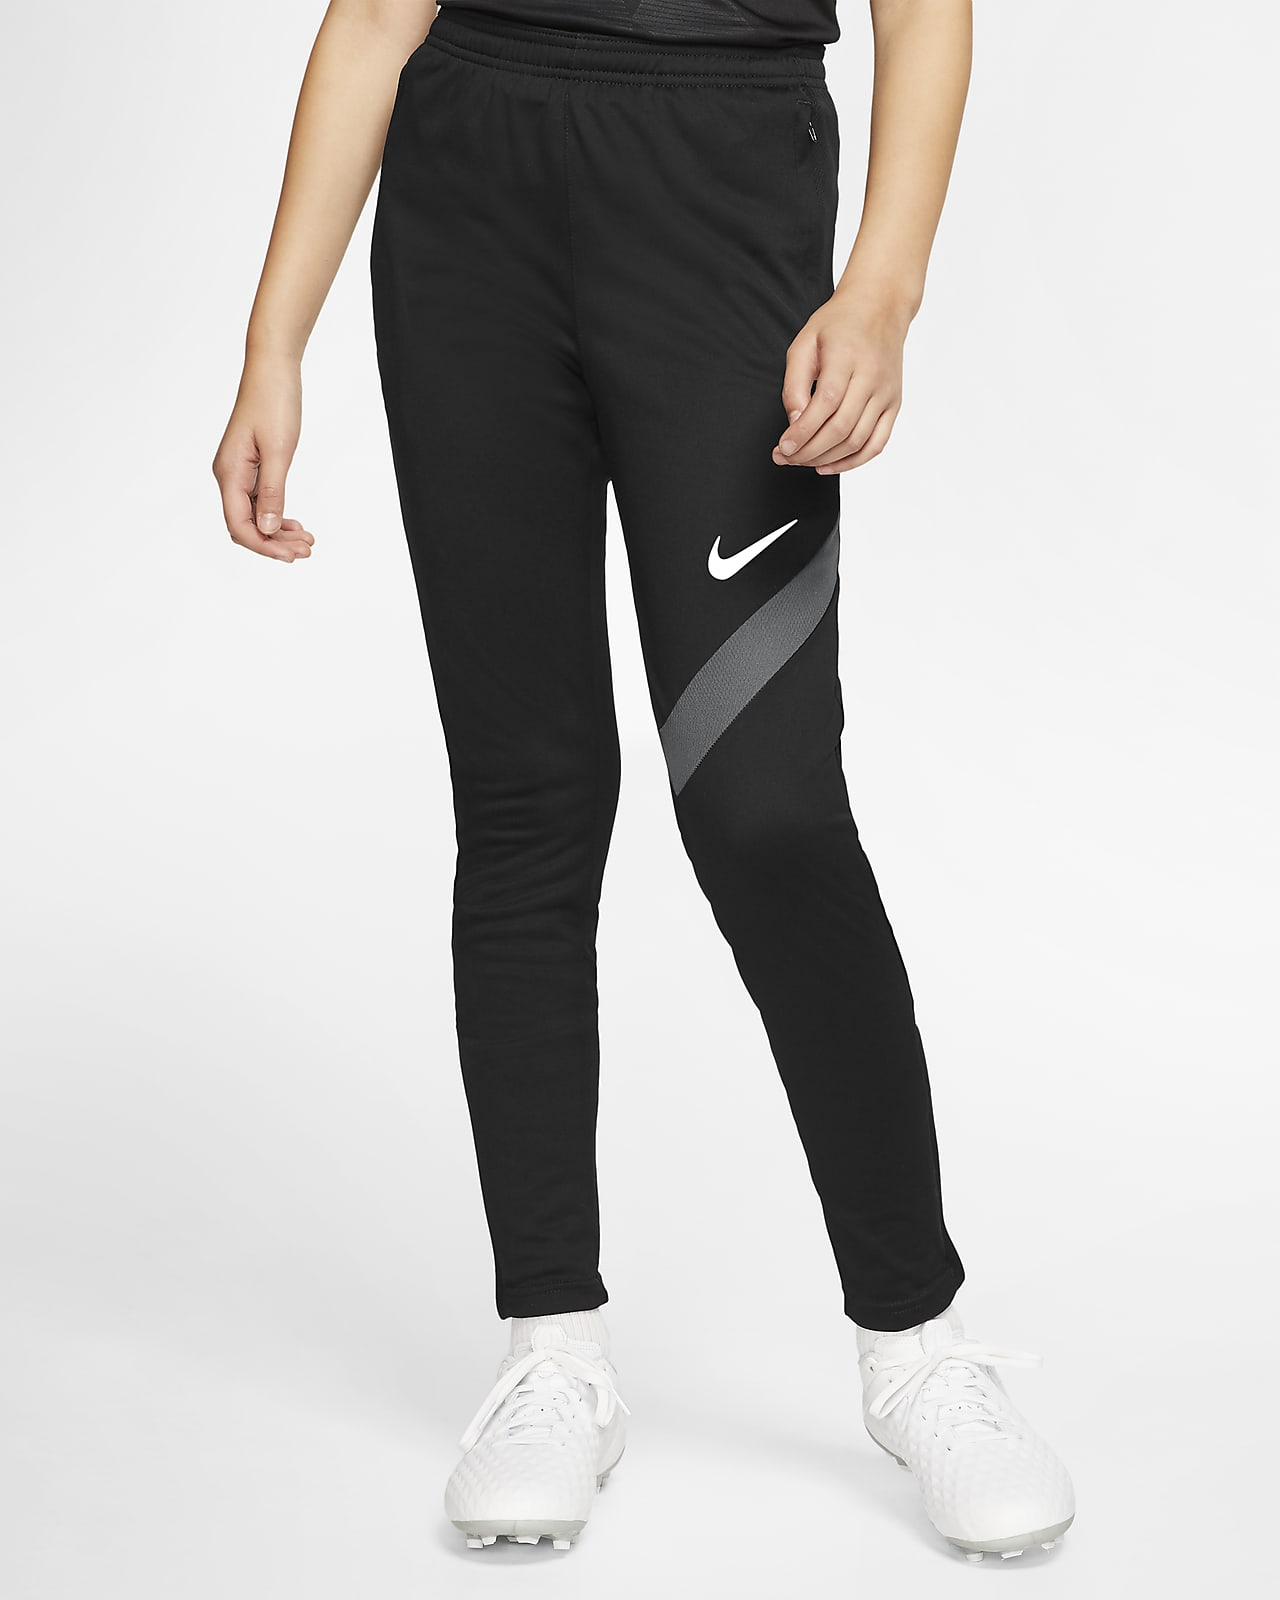 Pantalon de football Nike Dri-FIT Academy Pro pour Enfant plus âgé